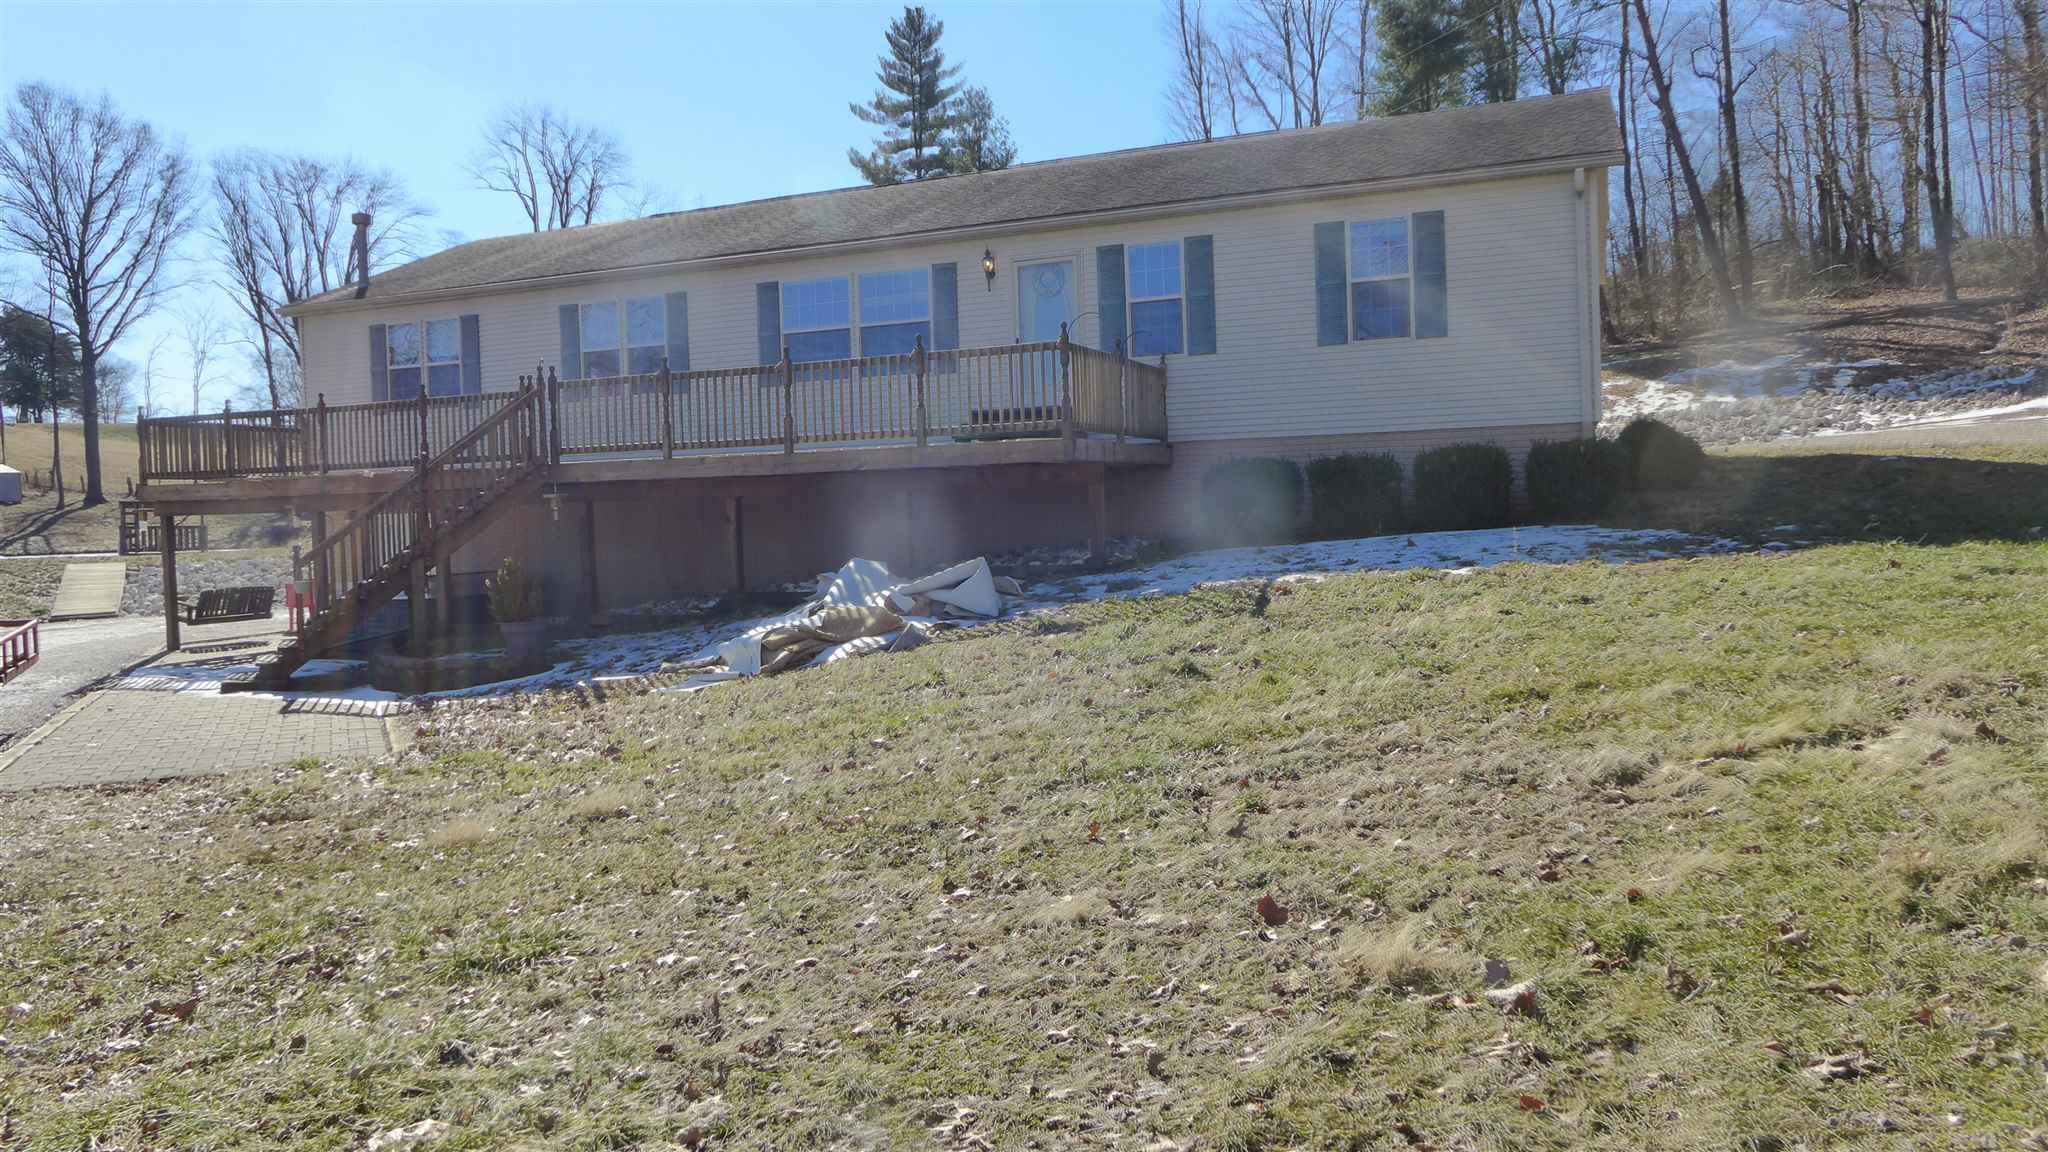 Are you looking for country living near Jasper?  Check out this property in Marion Twp. near Jasper.  These 4.8 acres offer a manufactured residence with 2,432 sq. ft. on the main level plus a poured concrete basement of 2,432 sq. ft with approx. 370 finished sq. ft., a 2-car garage in the lower level, a large deck overlooking the lake, a detached 24' by 32' garage and a pole structure 24' by 44' for a camper and storage, a nice pond with a dock with cover for fishing and recreation.  Also has a 6' by 6' child's playhouse.  Extra large rooms with a family room with fireplace, large kitchen with island bar, 3 bedrooms on the main level and a possible 4 bedroom on the lower level.  This residence has gas heat, central air, new floor coverings and more.  Very well maintained in a nice setting.